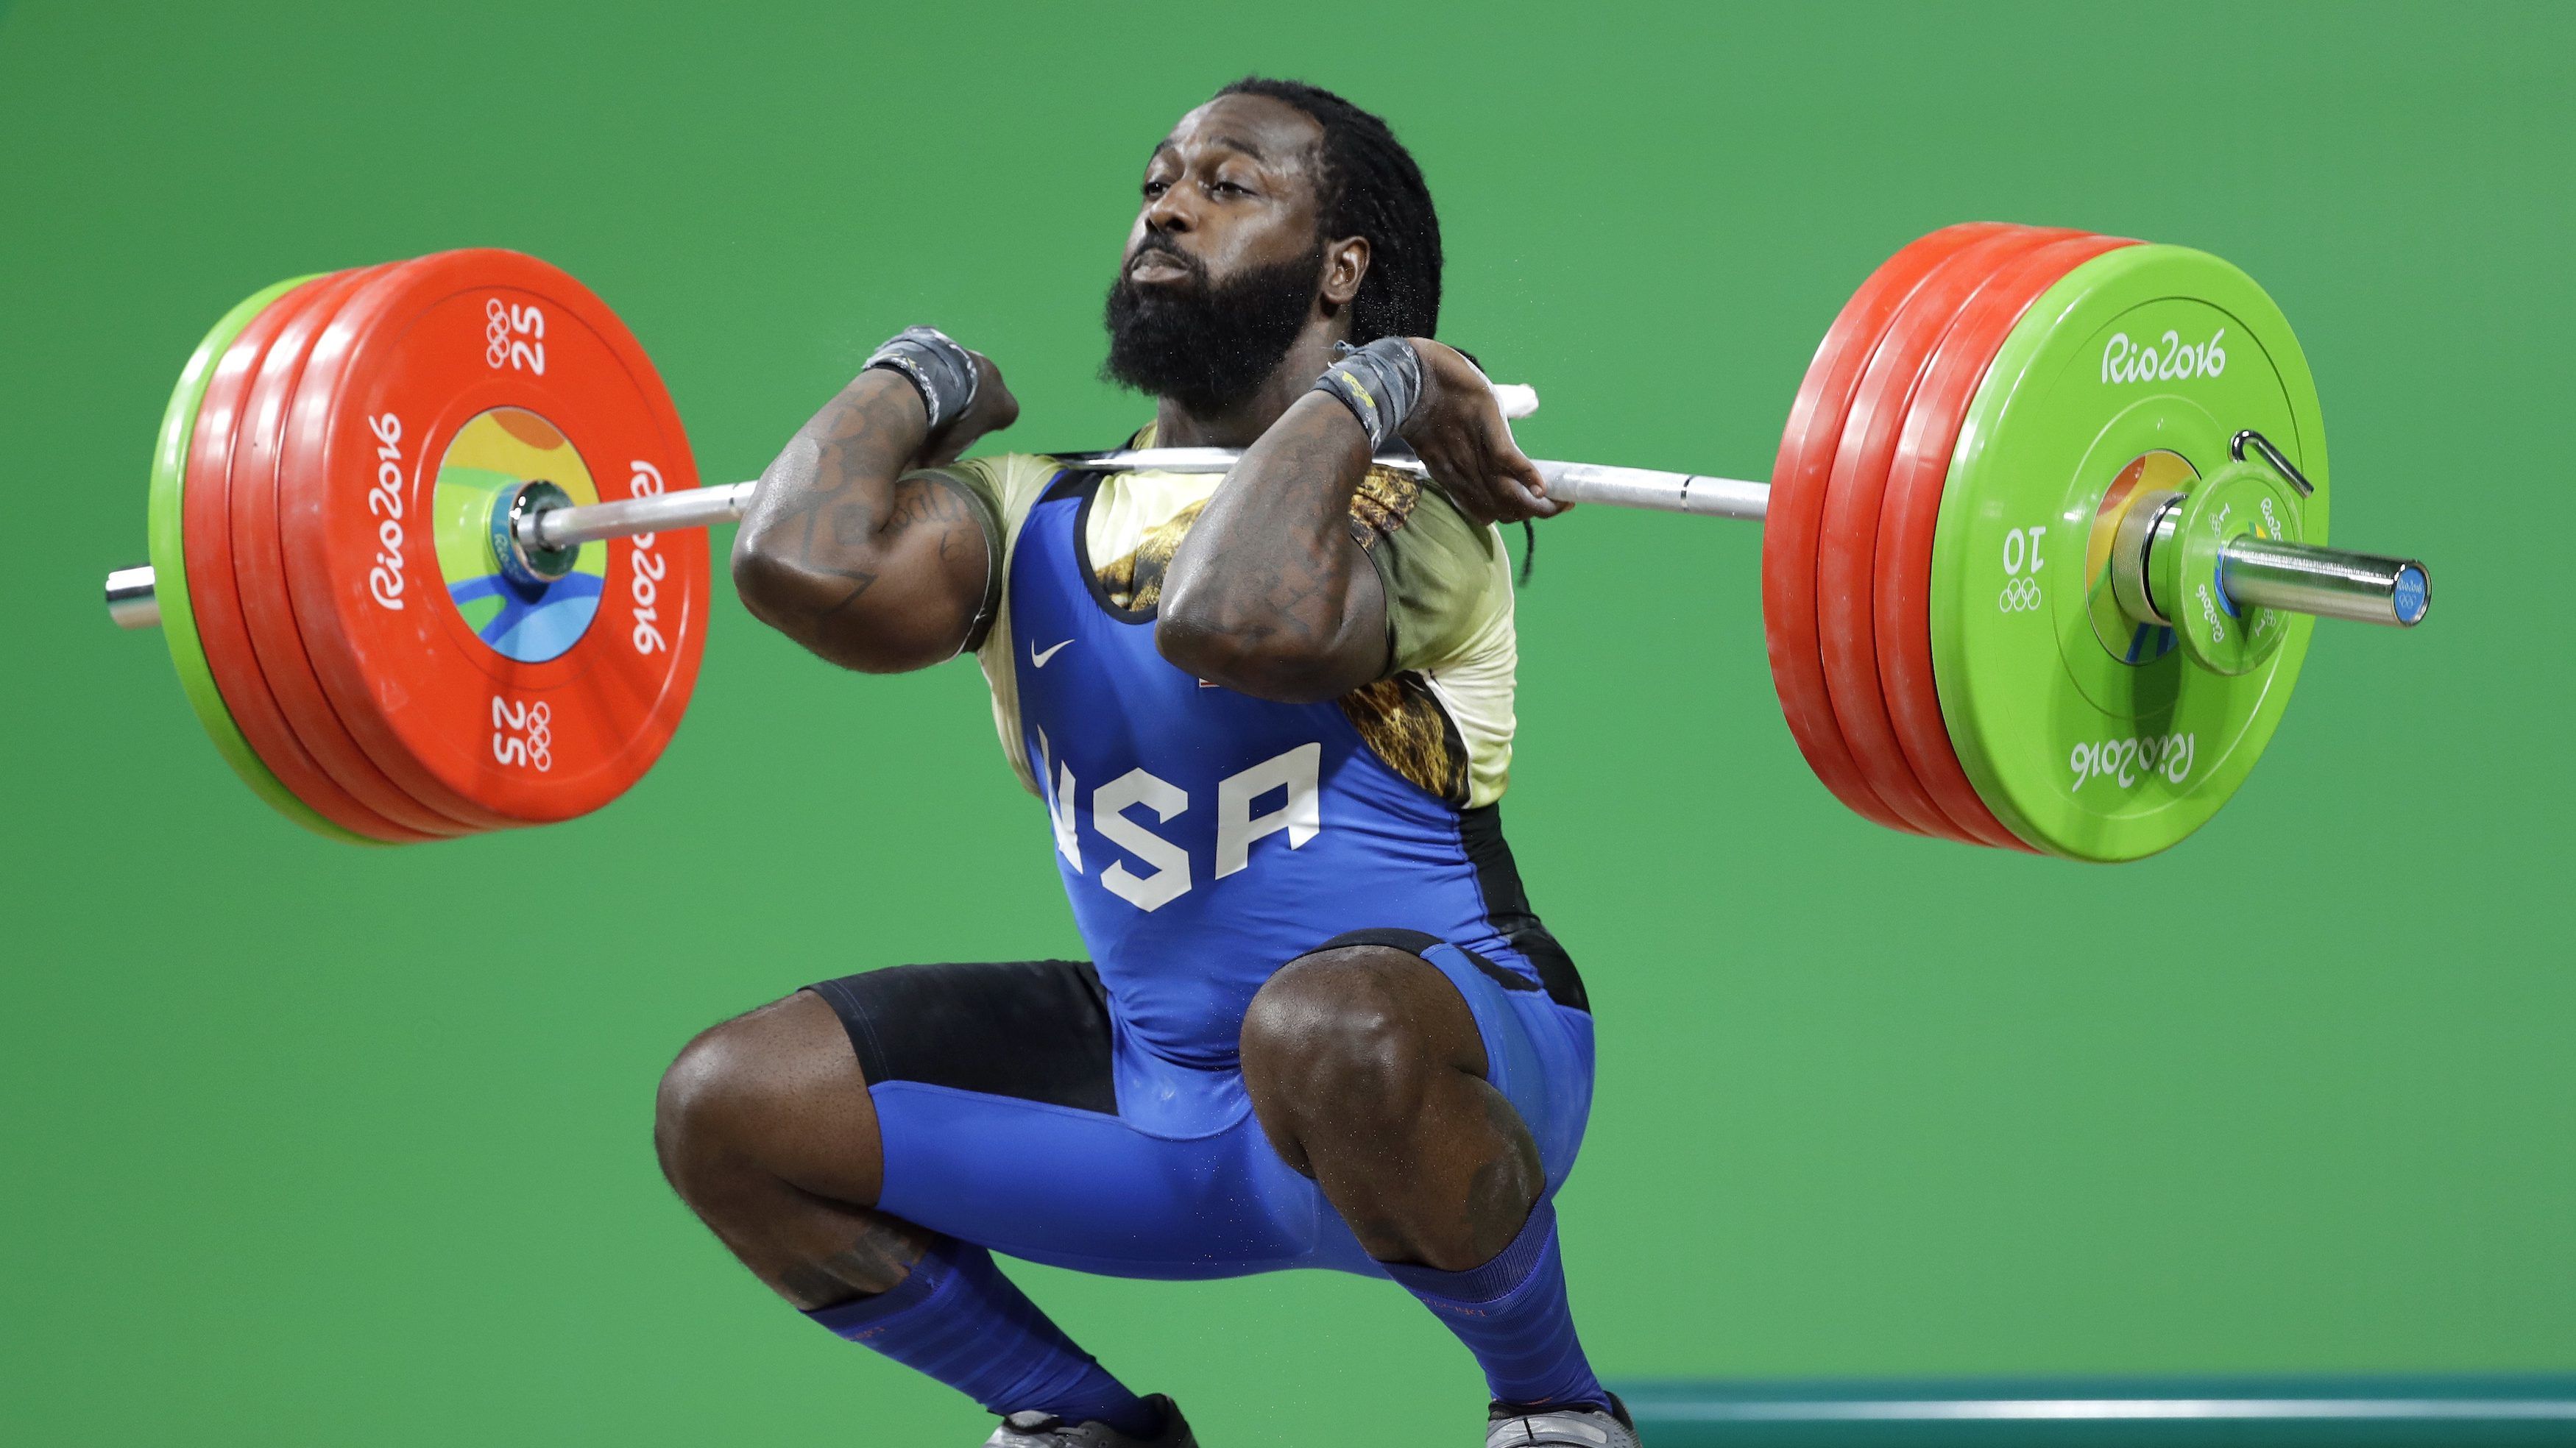 Rio 2016 Olympics Kendrick Farris The Only American Male Weightlifter To Compete At The Rio Olympics Is Vegan Quartz